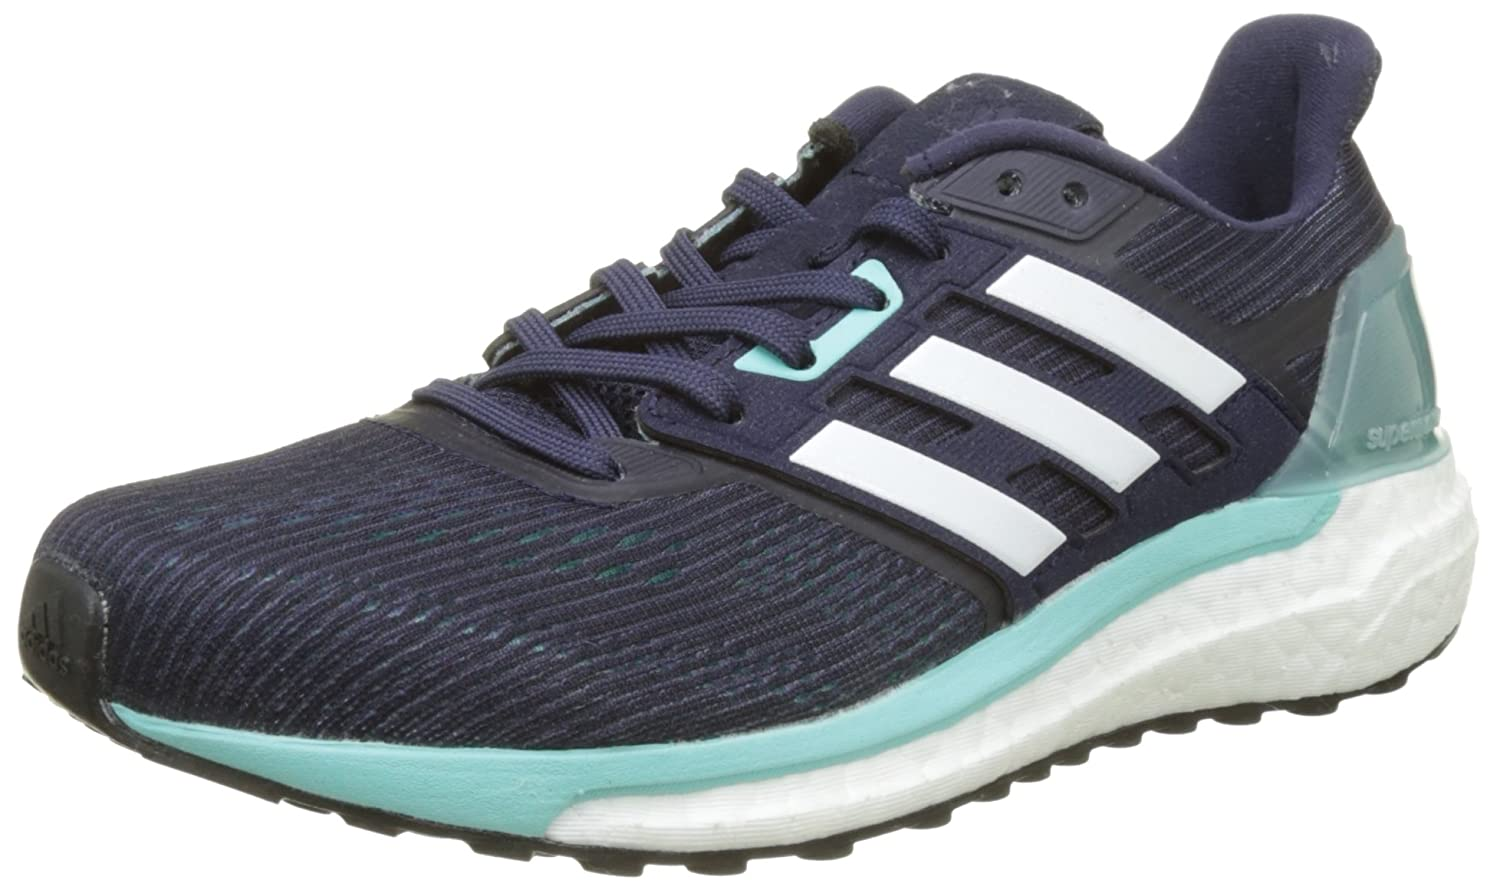 Adidas Supernova Glide 9 Zapatillas de Running para Mujer 40 EU|Multicolor (Noble Ink /Ftwr White/Energy Aqua )